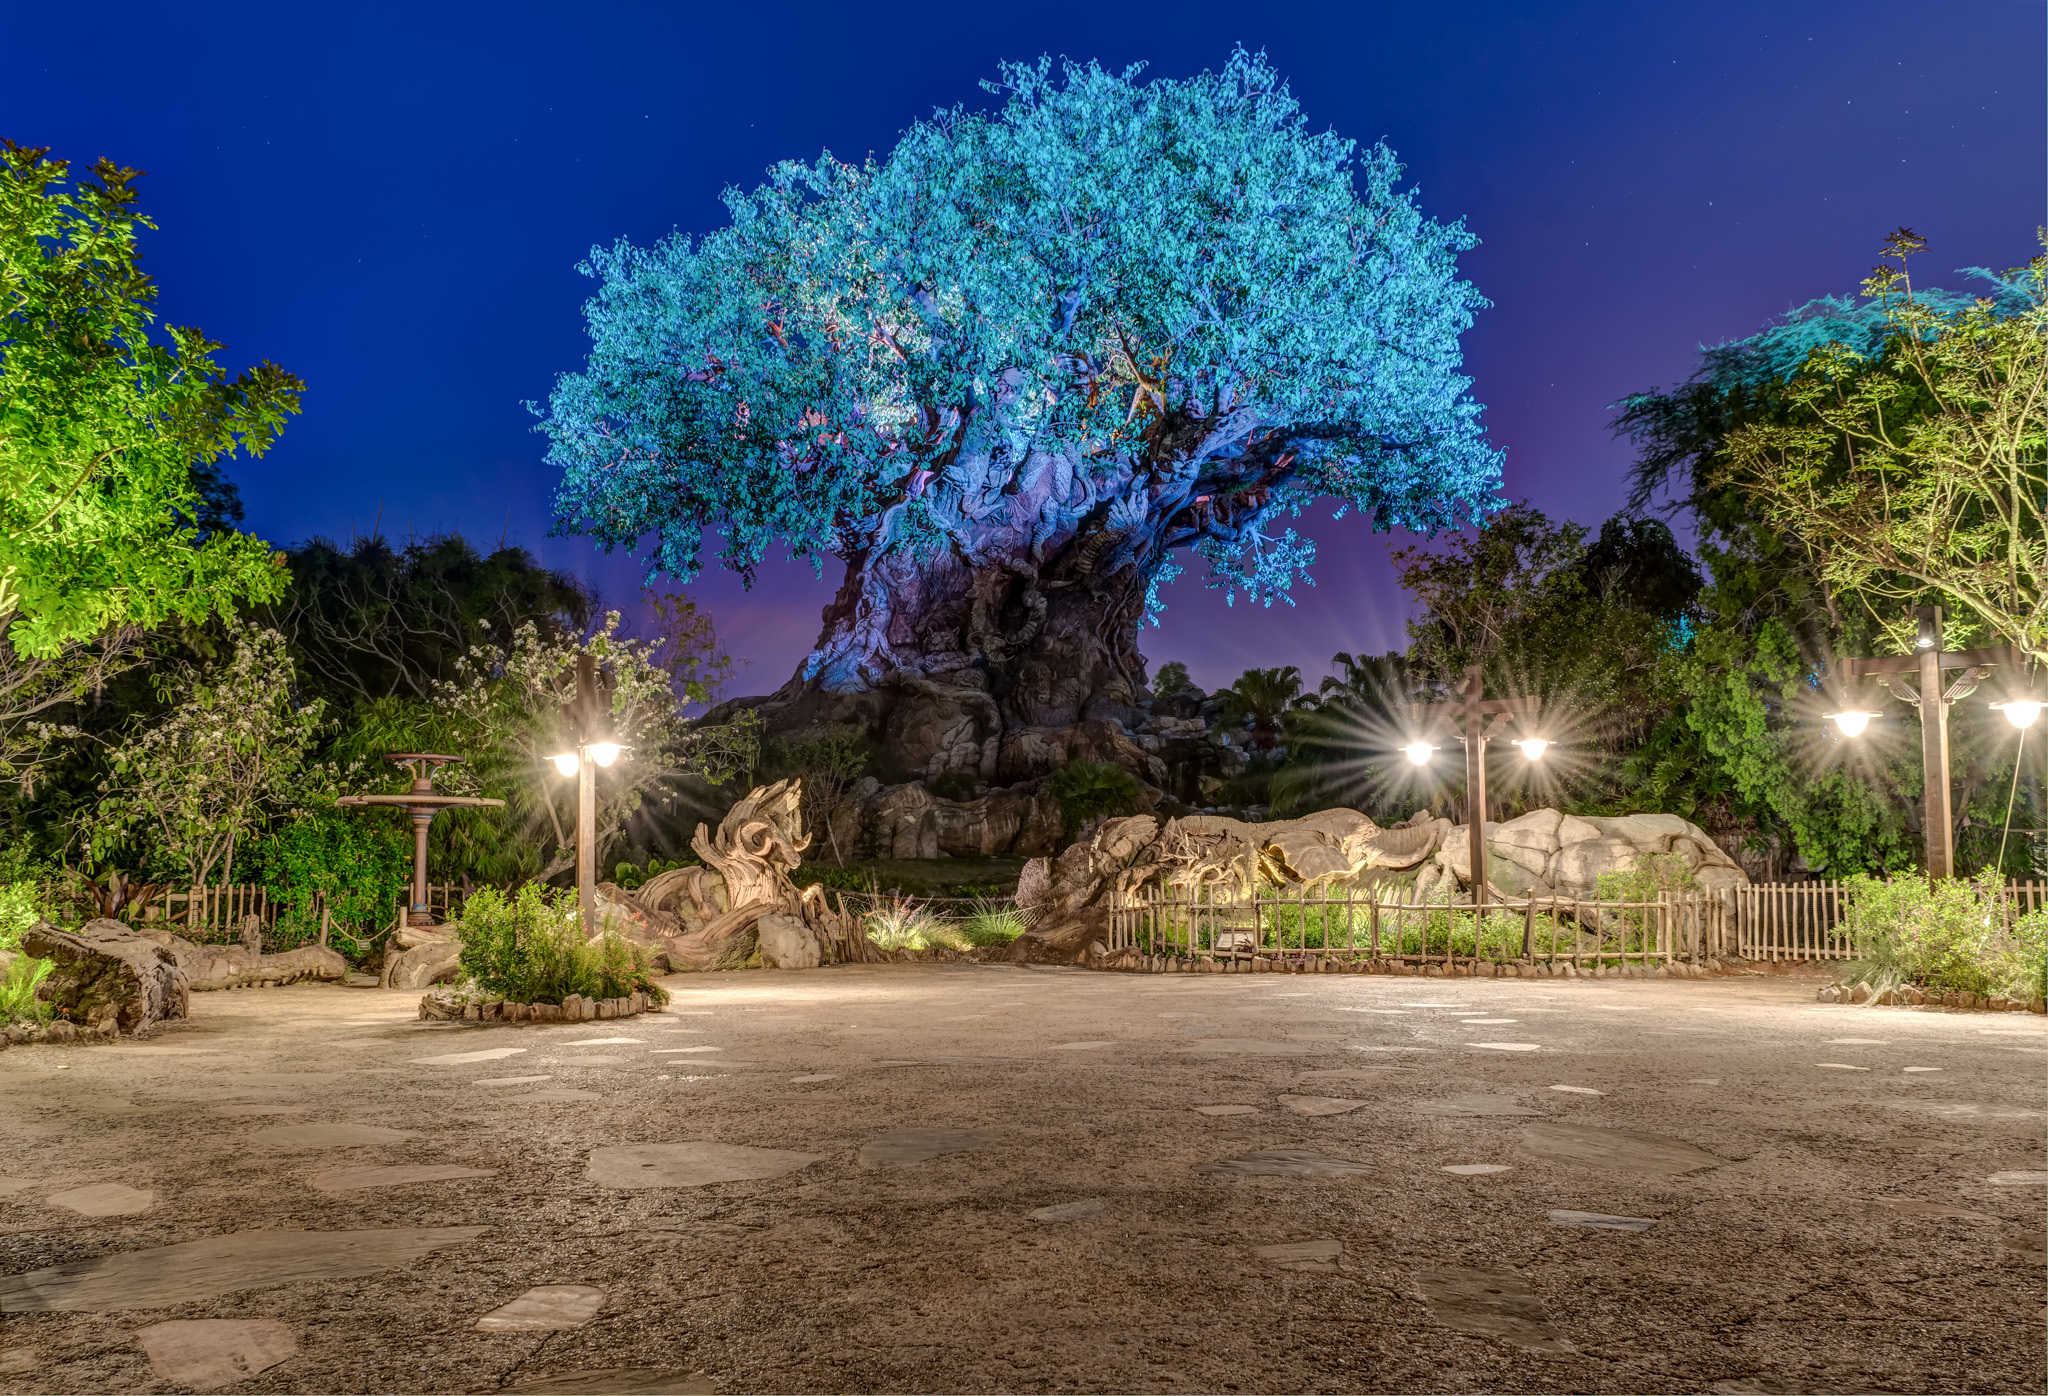 8 Unique Photos of an Empty Animal Kingdom at Night